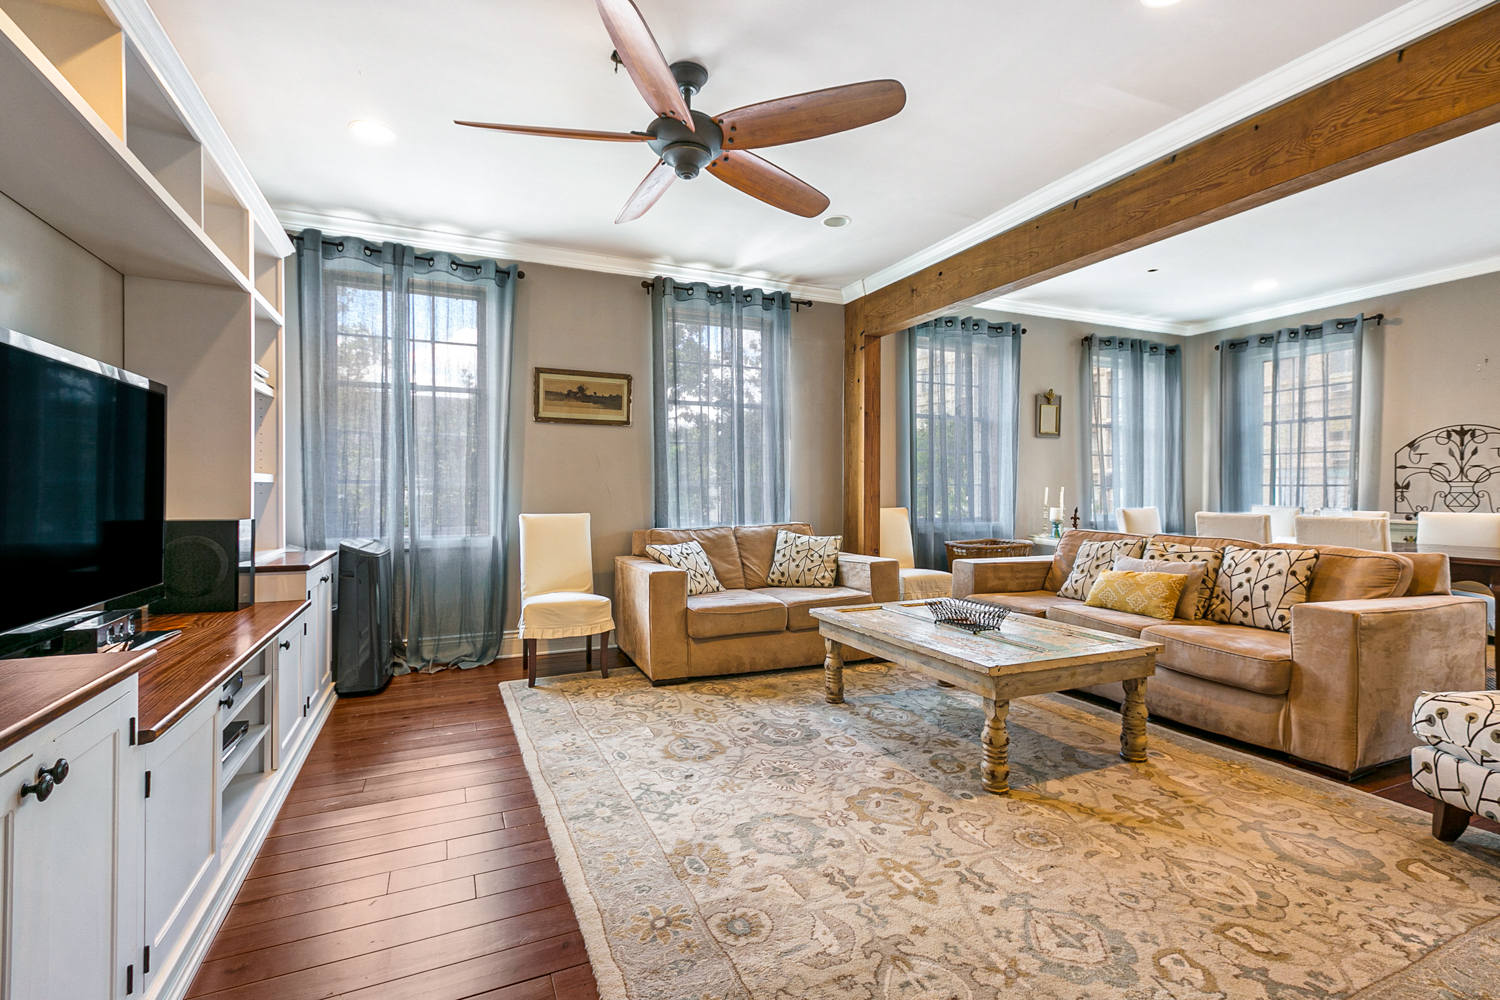 Charming 2 bedroom  apartment nested in the  beautiful Garden District neighborhood. Steps to the streetcar. Few blocks to Magazine St. where you can walk to many restaurants, shops, grocery stores.